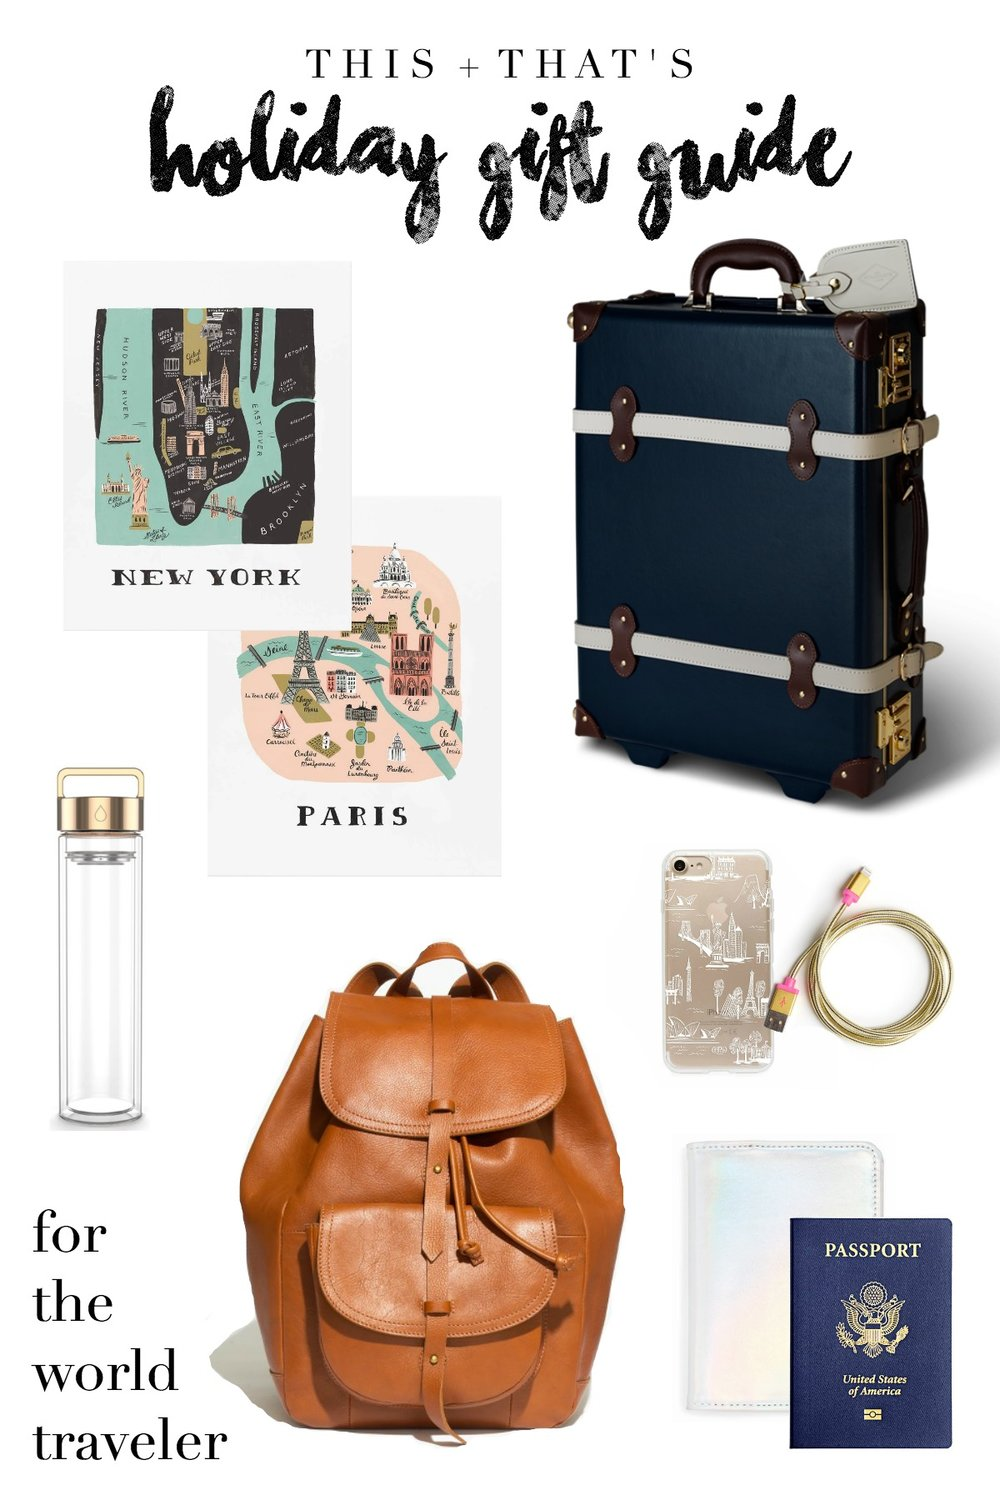 T+T world traveler gift guide 2016.jpg